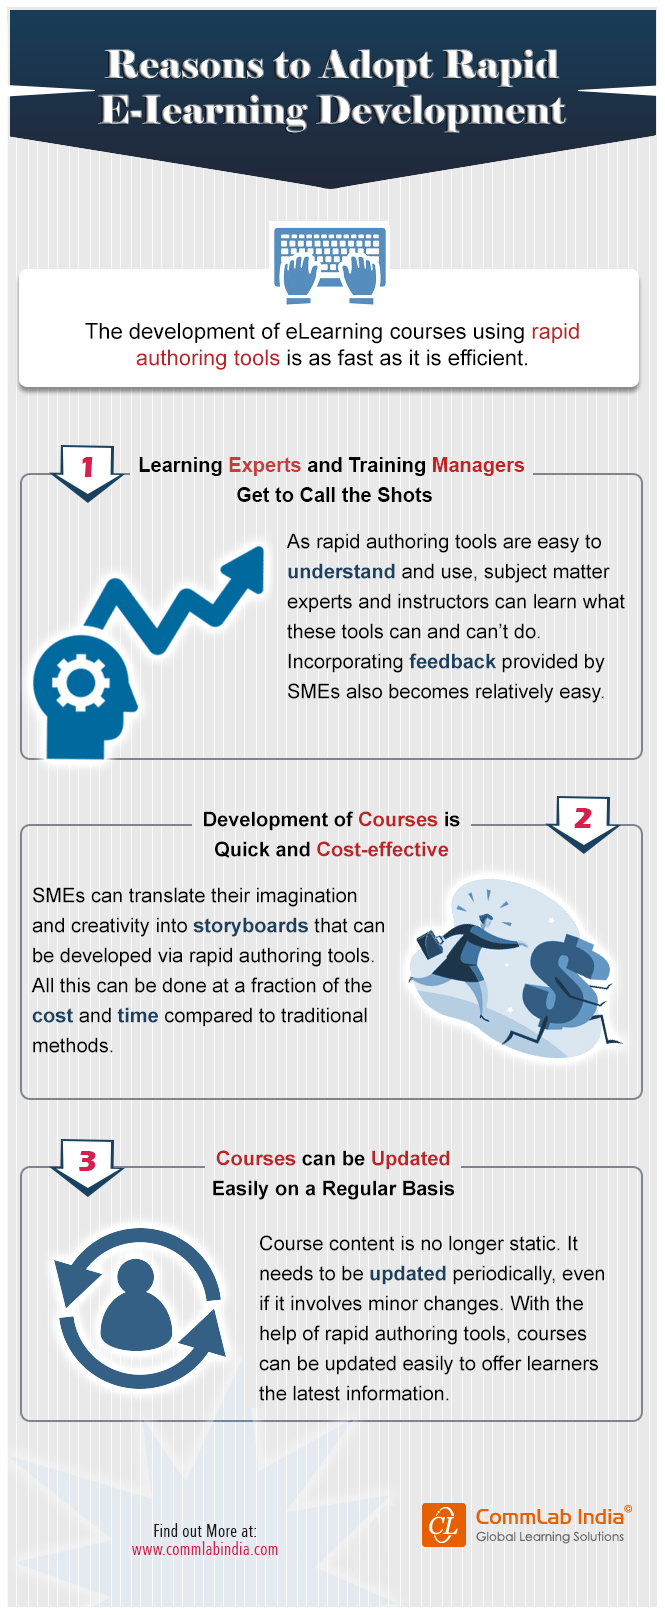 Reasons to Adopt Rapid E-learning Development [Infographic]